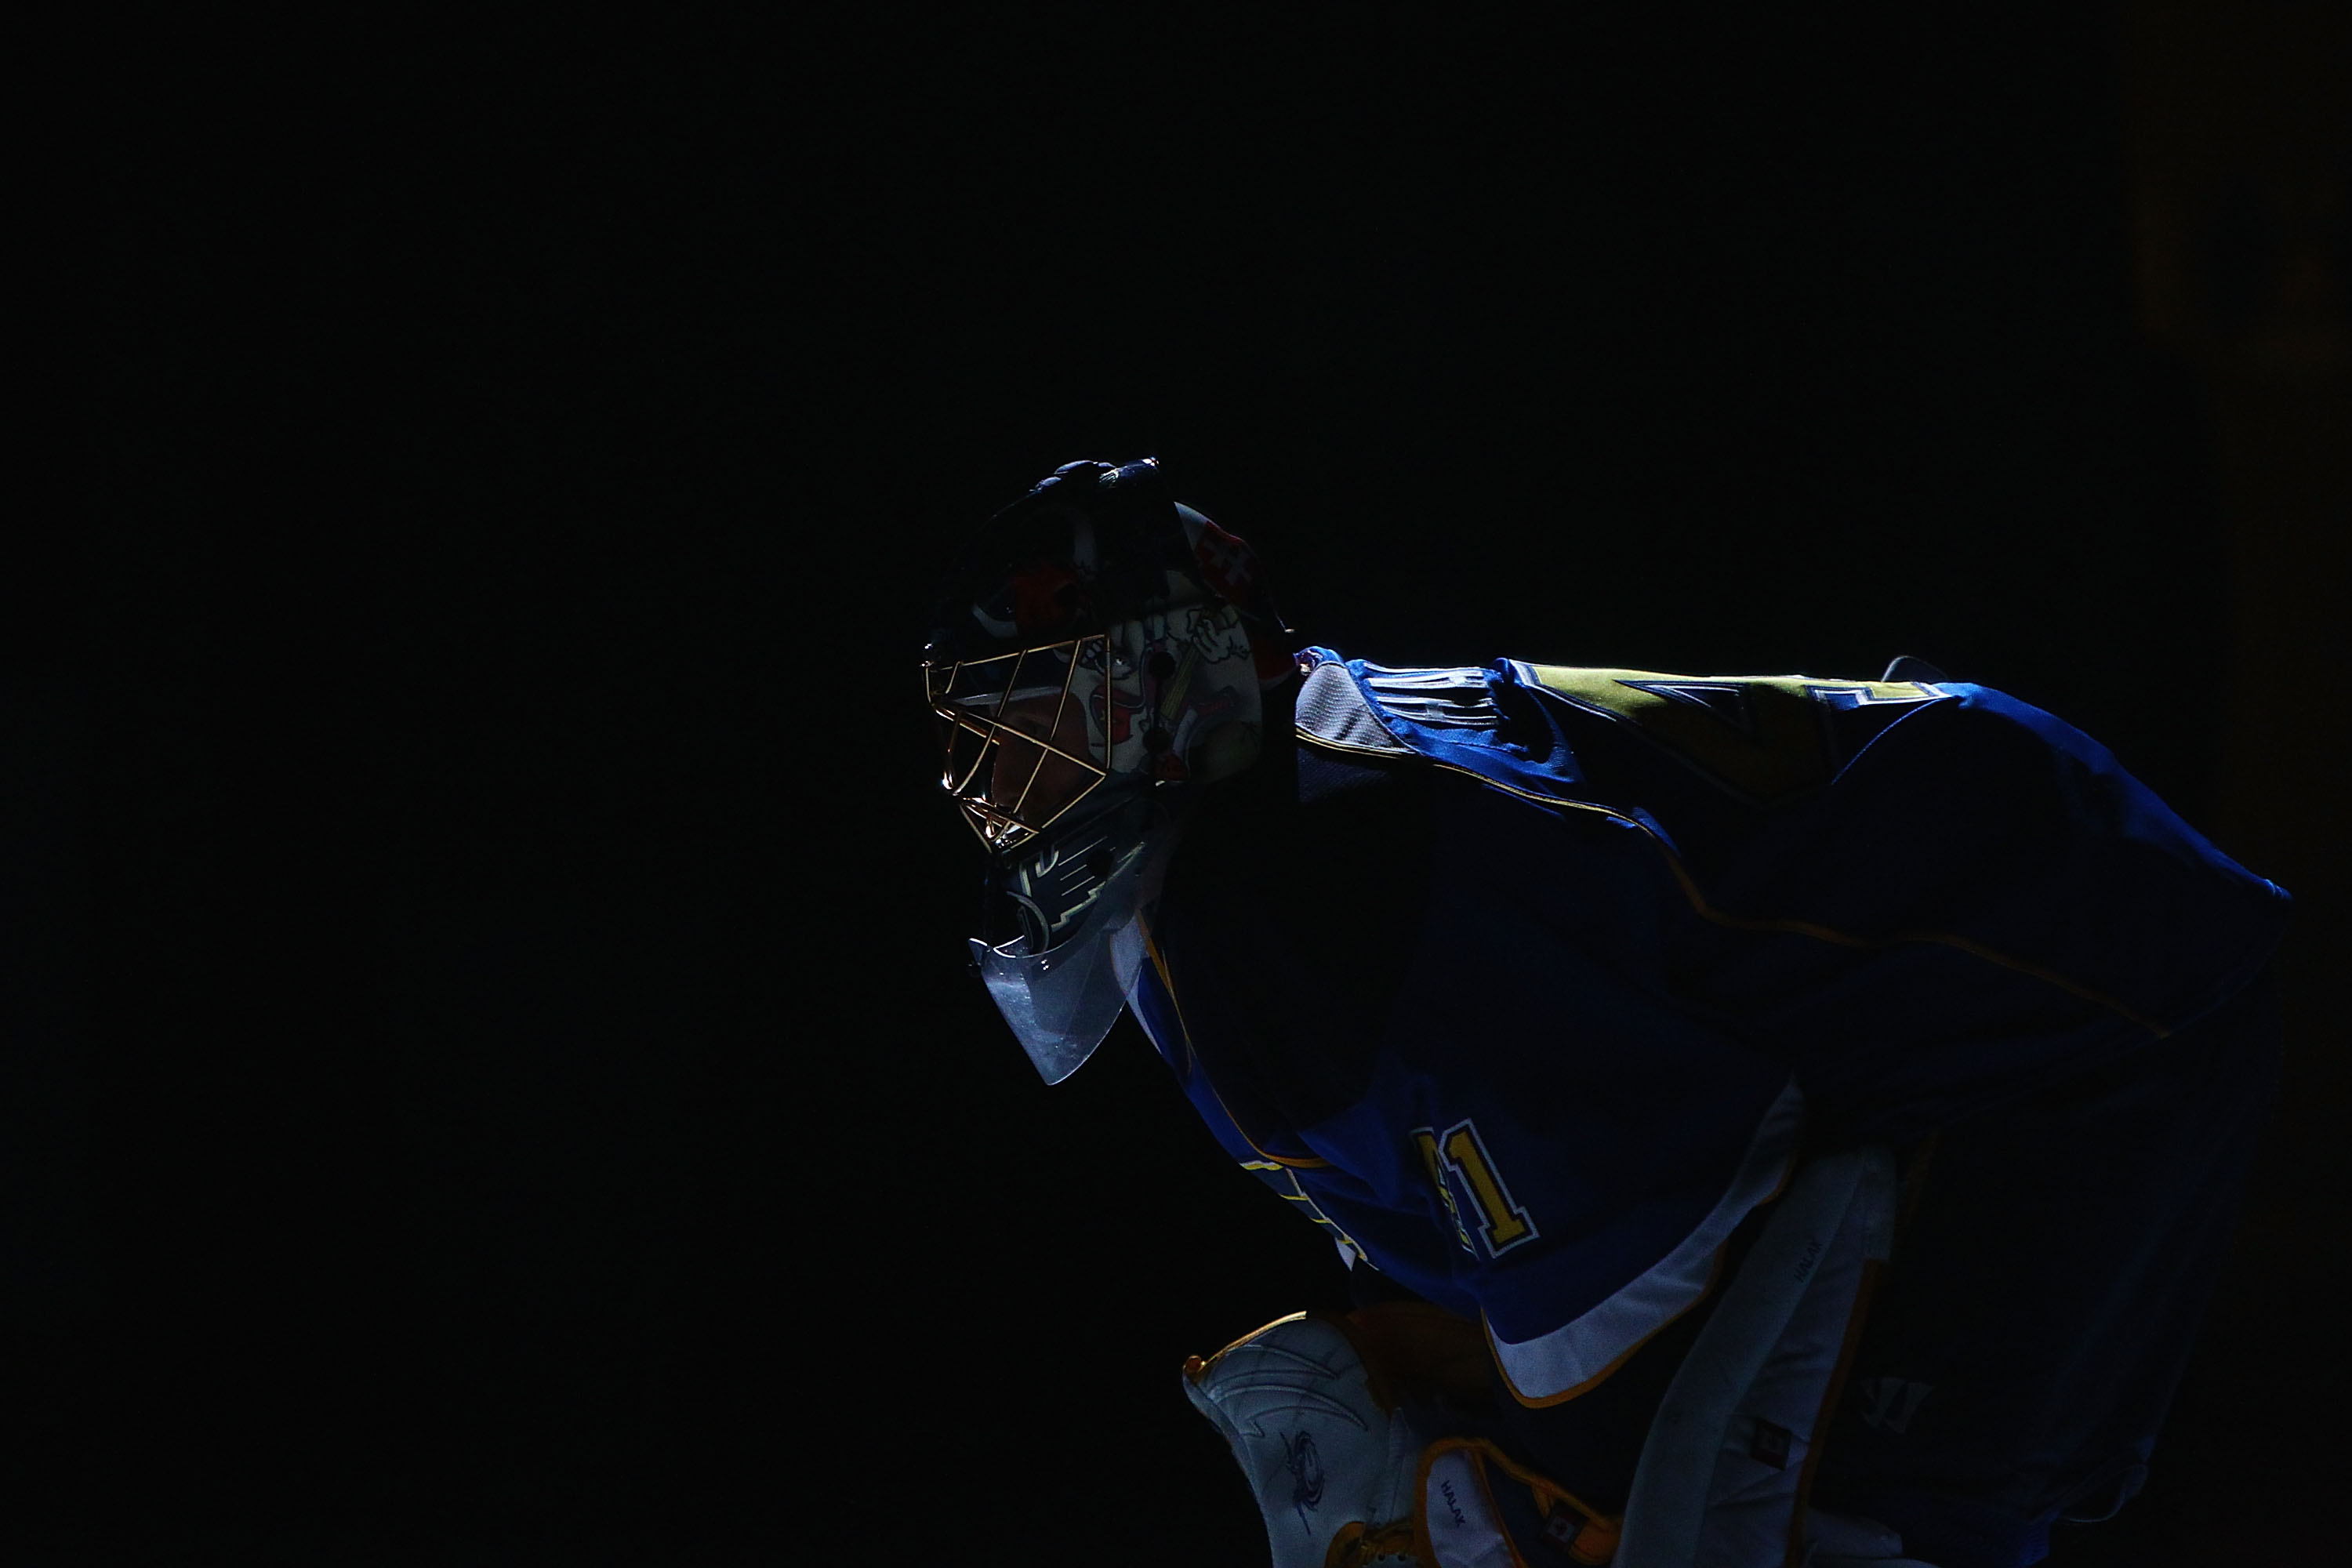 ST. LOUIS, MO - JANUARY 10: Jaroslav Halak #41 of the St. Louis Blues is introduced prior to playing against the Phoenix Coyotes at the Scottrade Center on January 10, 2011 in St. Louis, Missouri.  (Photo by Dilip Vishwanat/Getty Images)